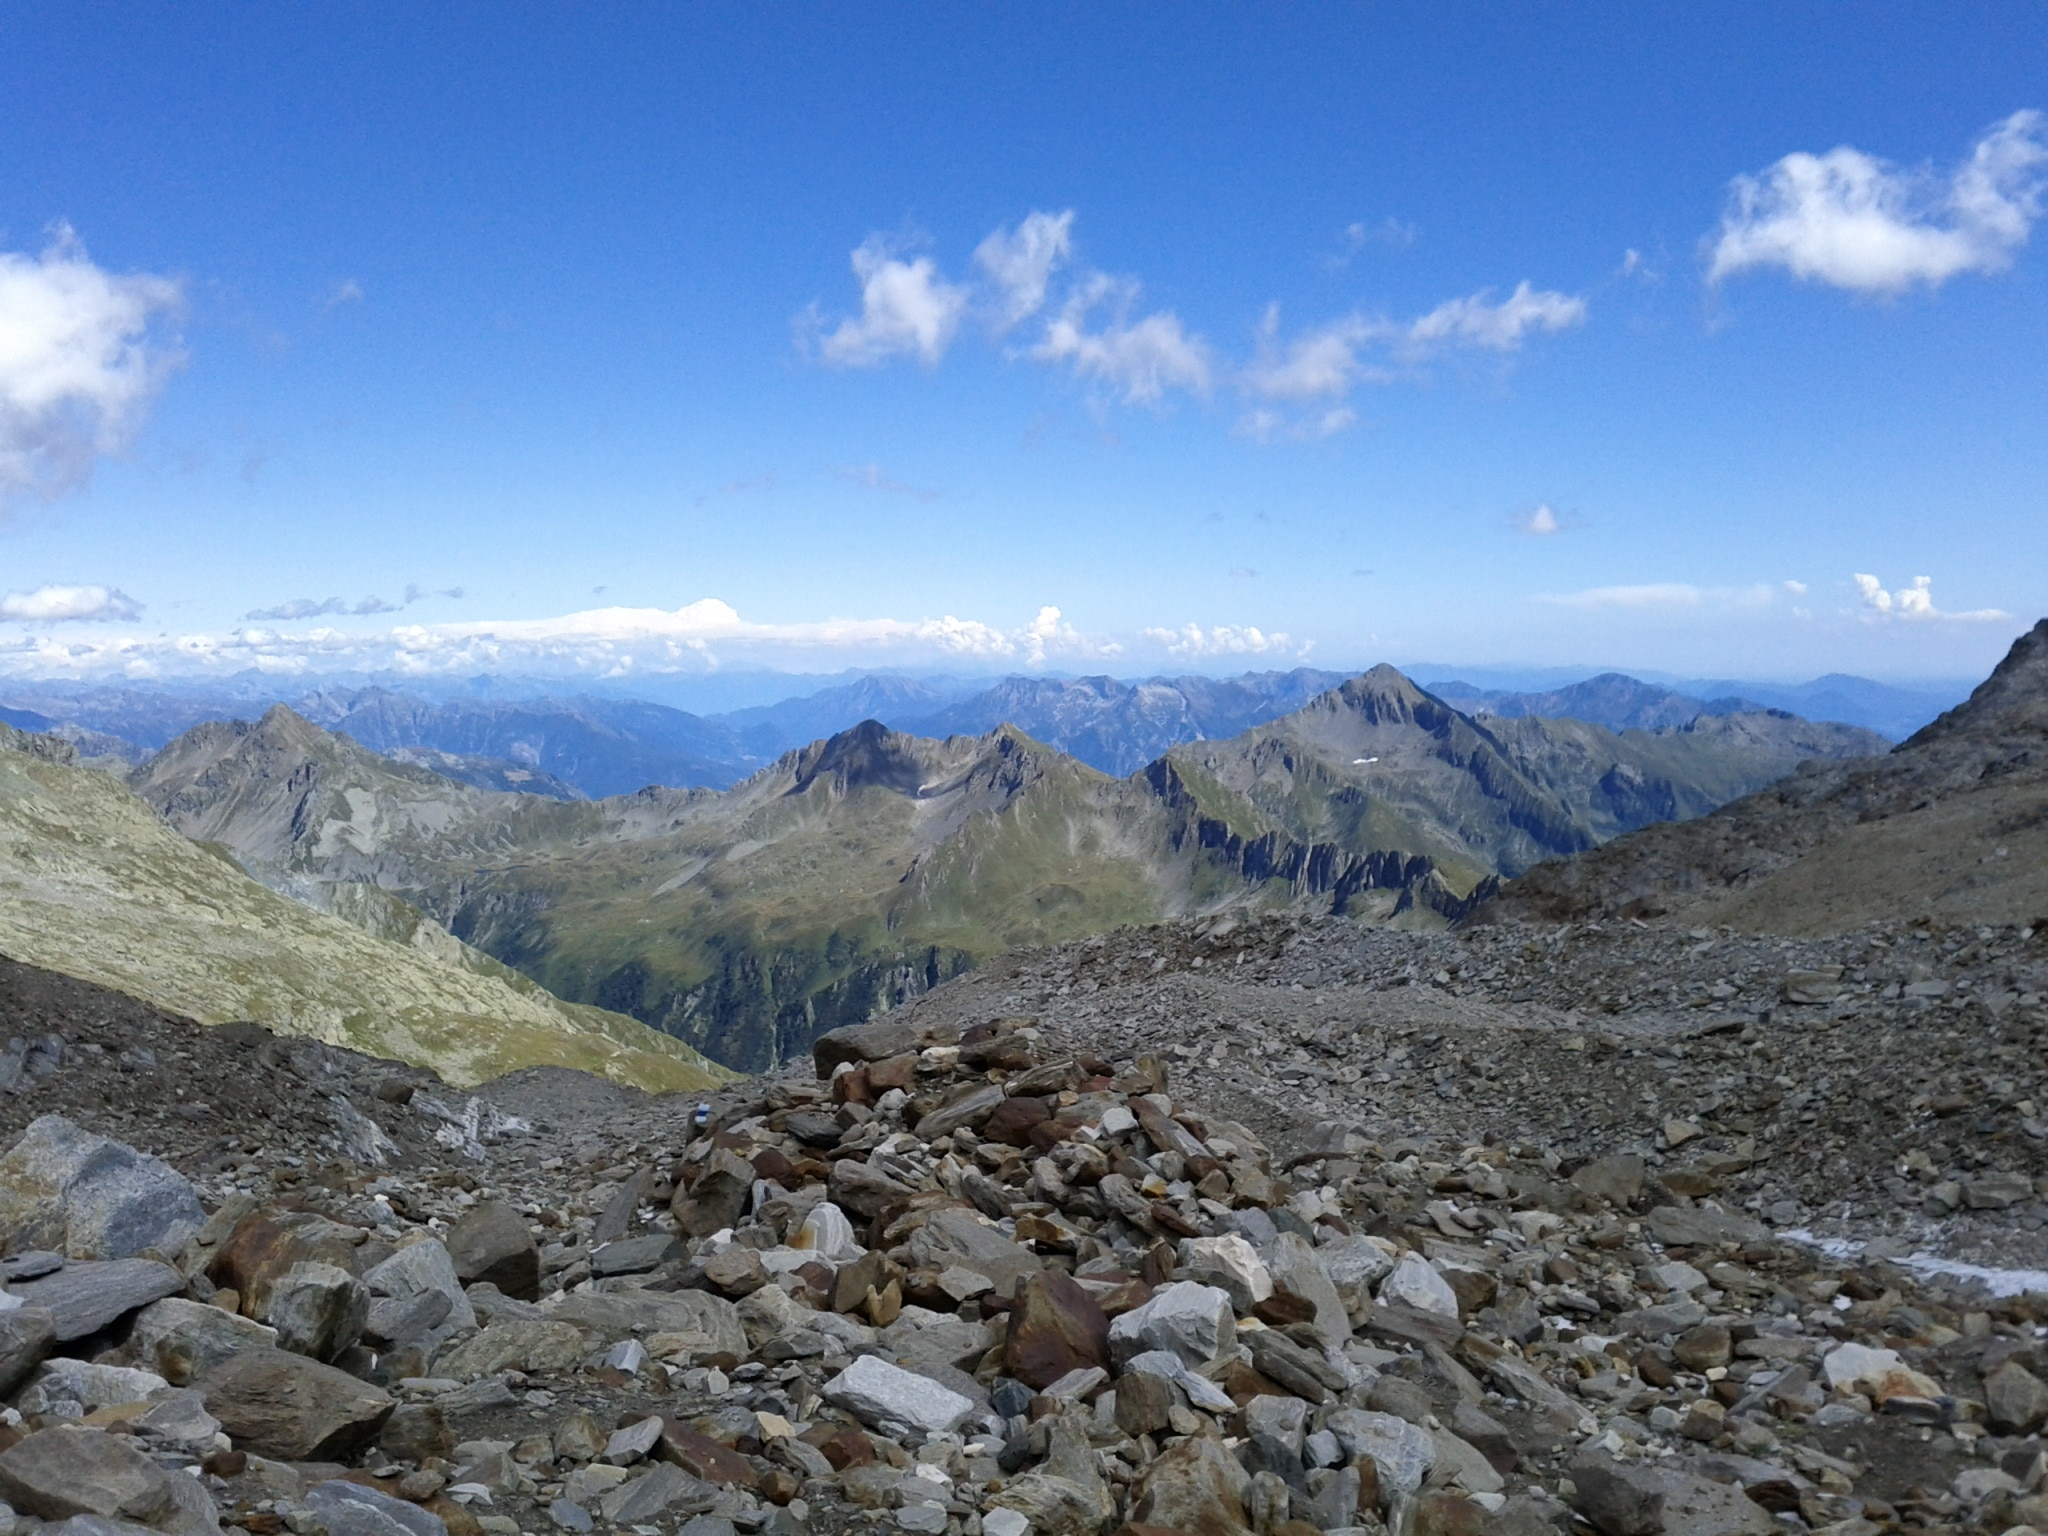 Looking east across the Centovalli​, where I crossed a week or so ago.